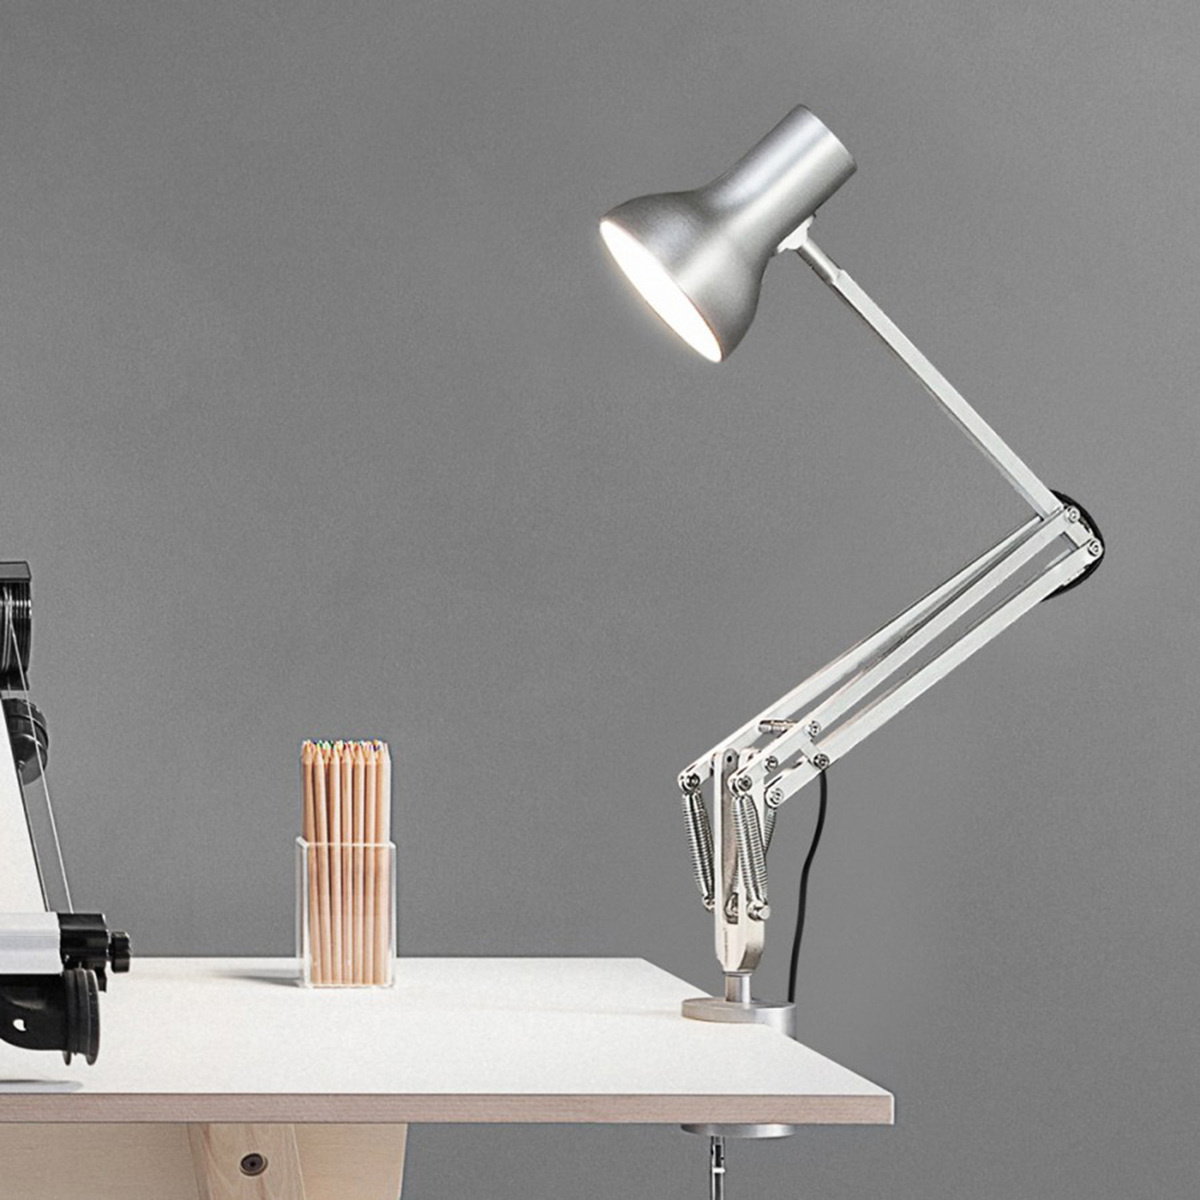 lampe de table type75 mini avec serre joint by anglepoise. Black Bedroom Furniture Sets. Home Design Ideas